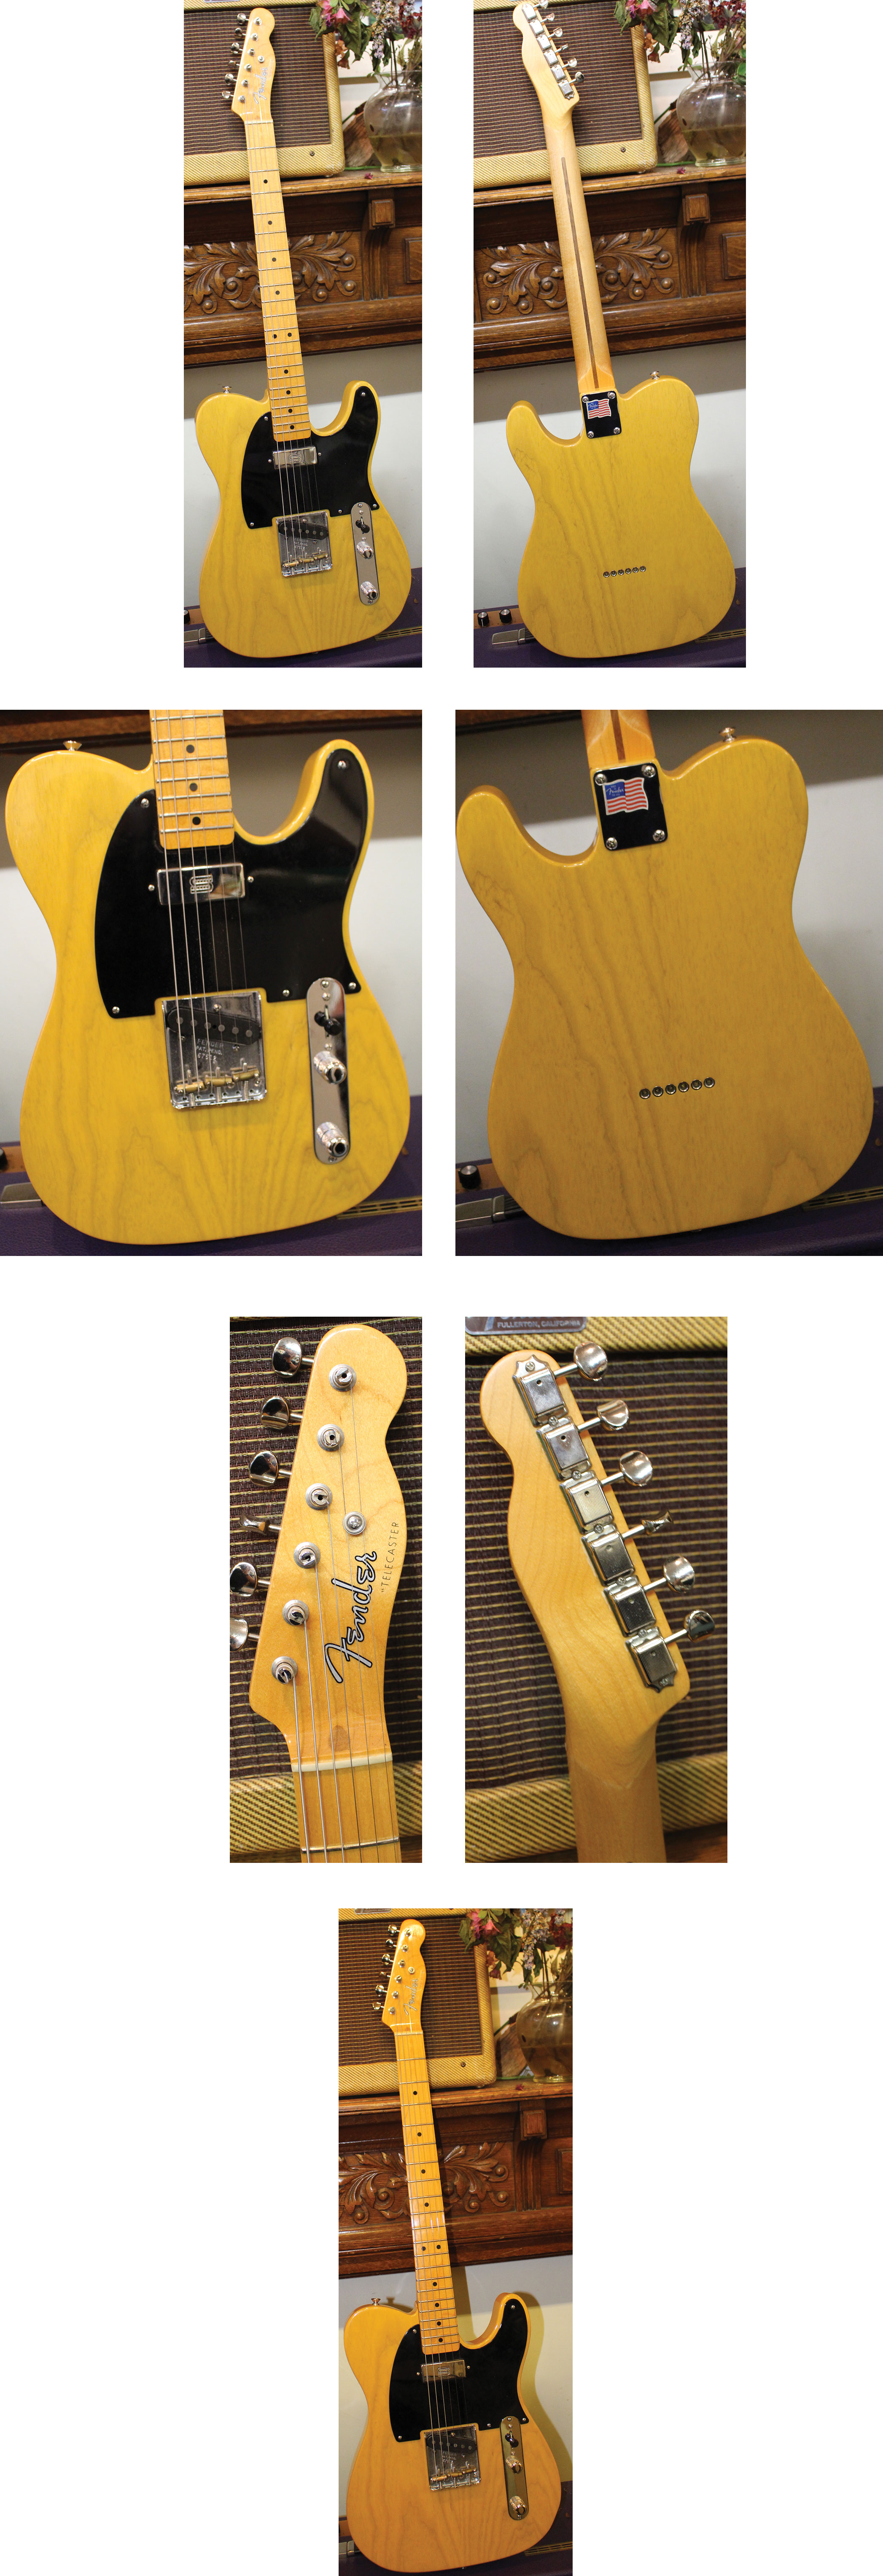 171b6ce4b9e $2795 *FENDER American Vintage Hot Rod 1952 Telecaster, recent, Ash body  with nitrocellulose lacquer butterscotch finish, Blackguard, Seymour Duncan  custom ...